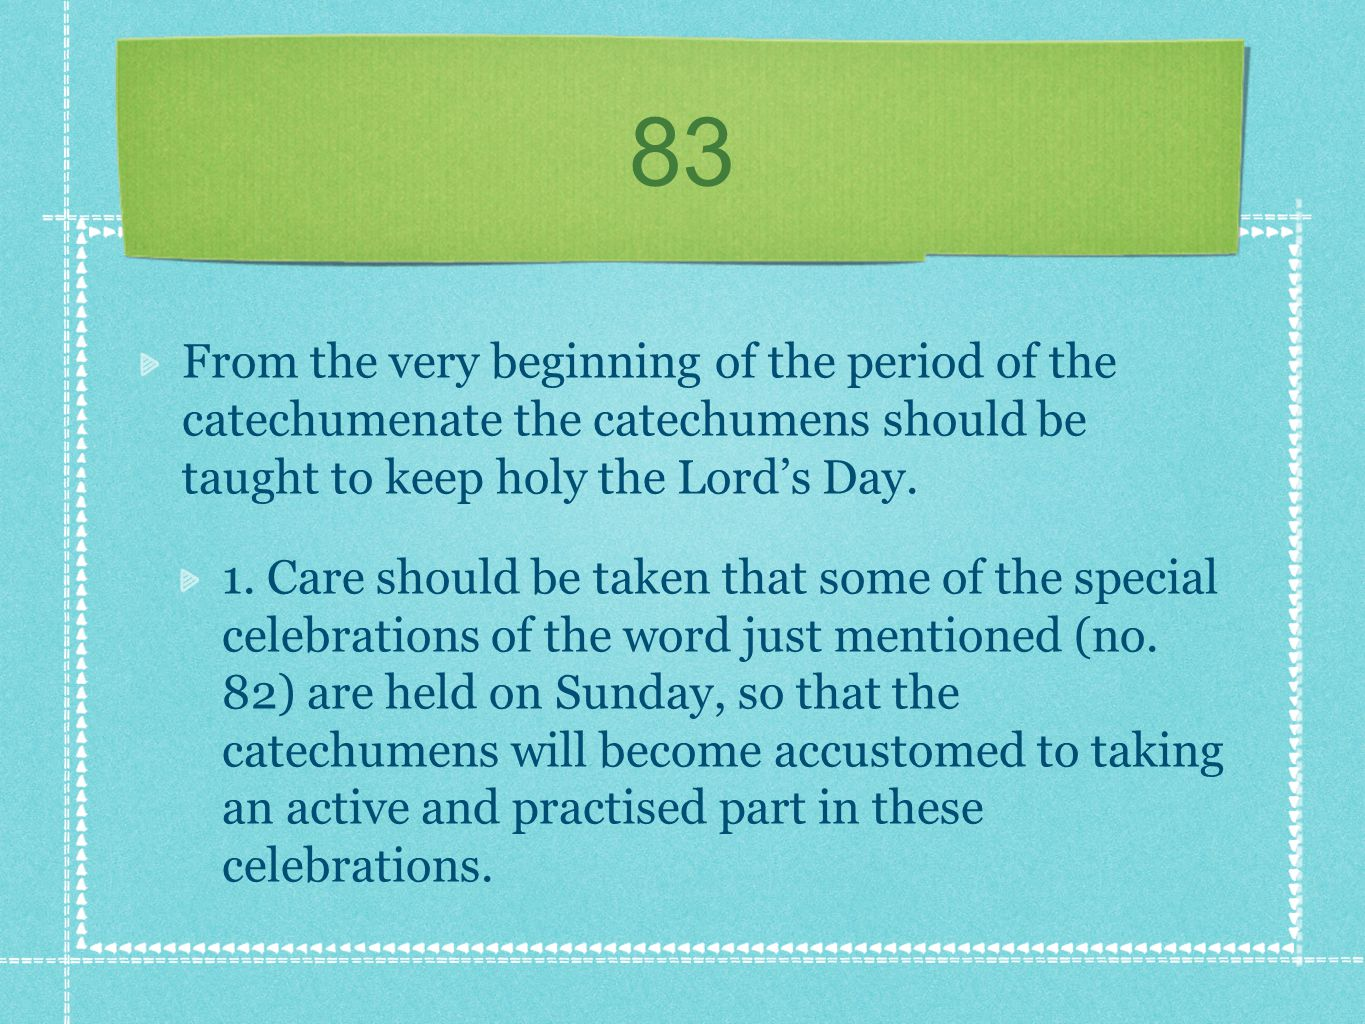 83 From the very beginning of the period of the catechumenate the catechumens should be taught to keep holy the Lord's Day.